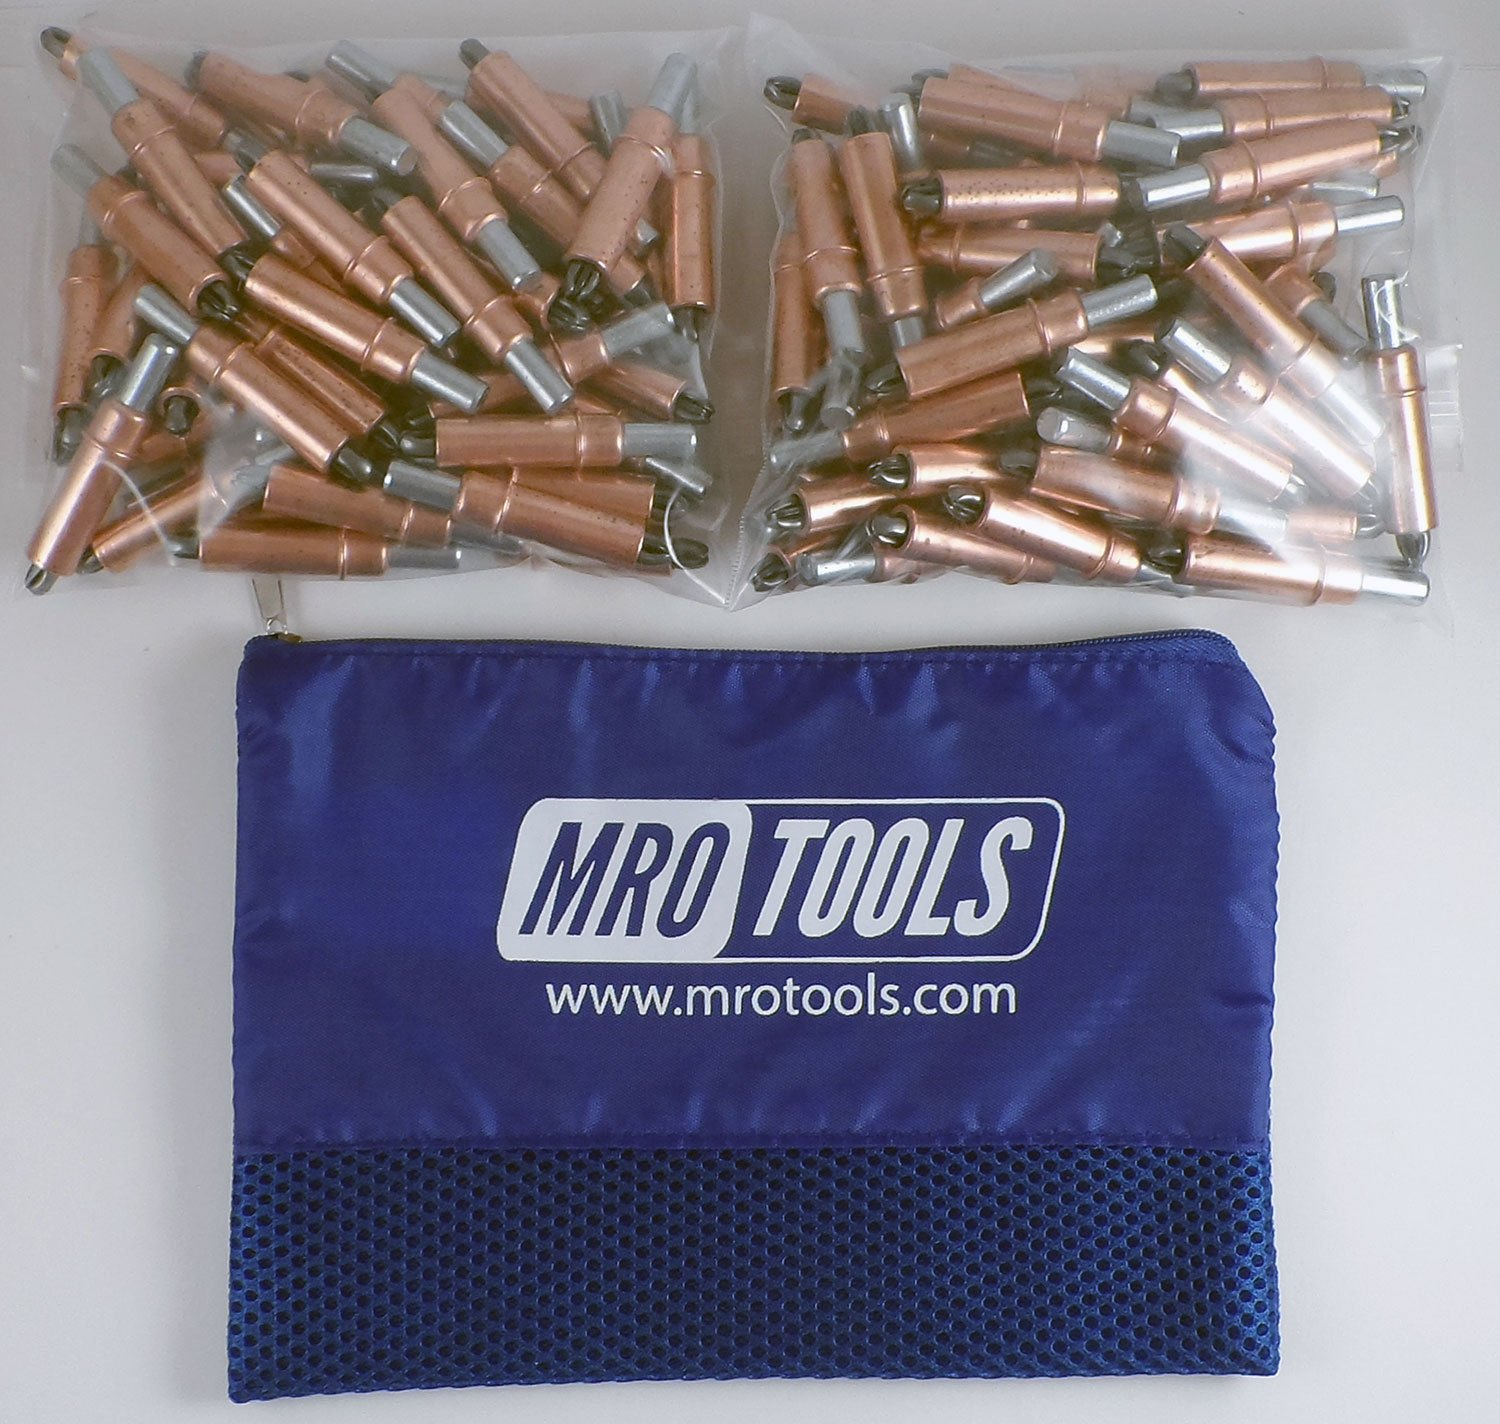 150 1/4 Cleco Sheet Metal Fasteners w/ Mesh Carry Bag (K2S150-1/4) by MRO Tools Cleco Fasteners